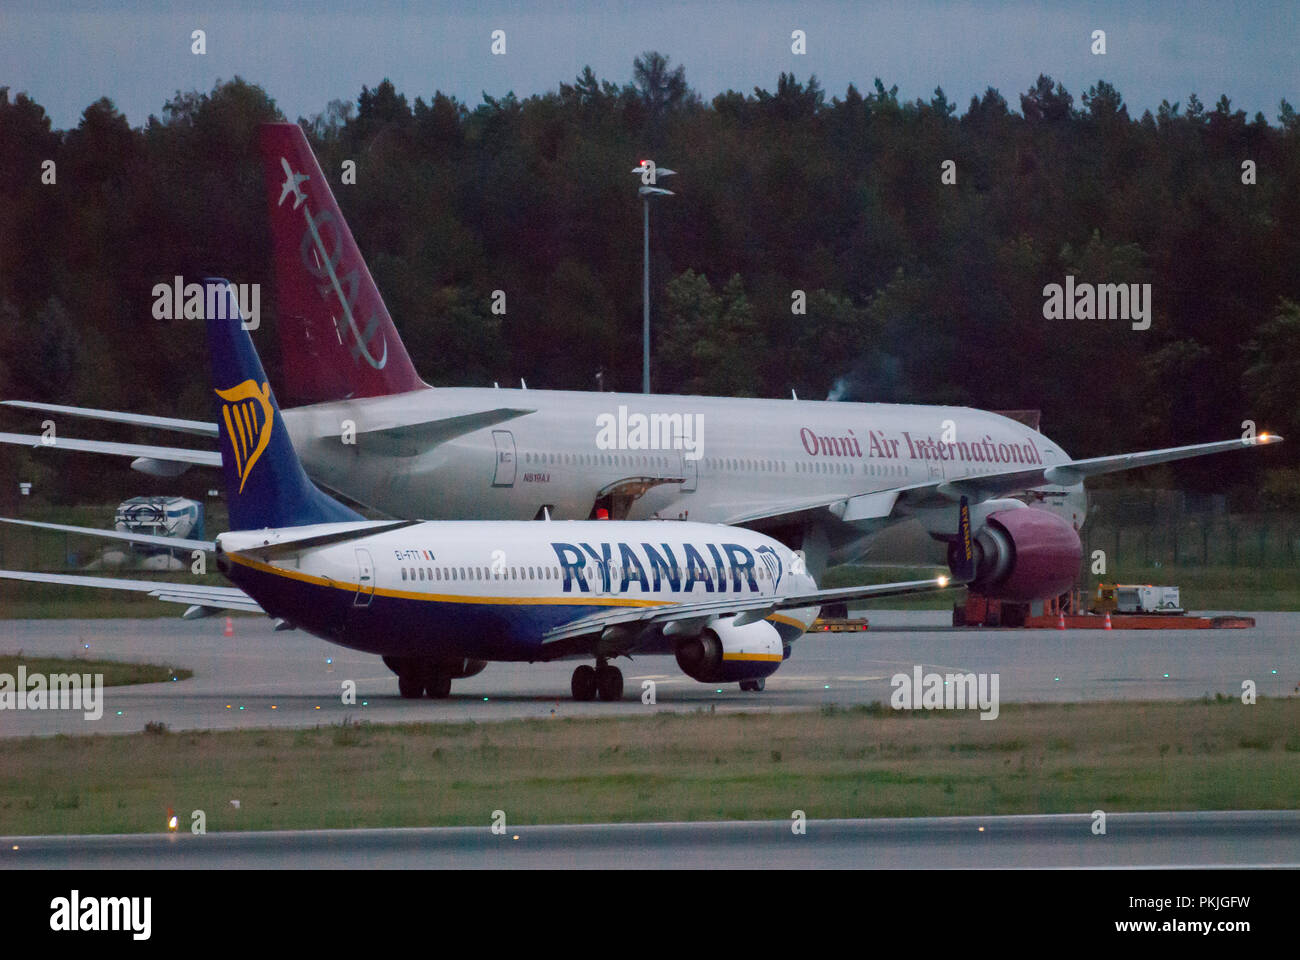 Low cost airline Ryanair aircraft Boeing 737-800 and charter Omni Air International Boeing 777-2U8(ER) in Gdansk Lech Walesa Airport in Gdansk, Poland - Stock Image